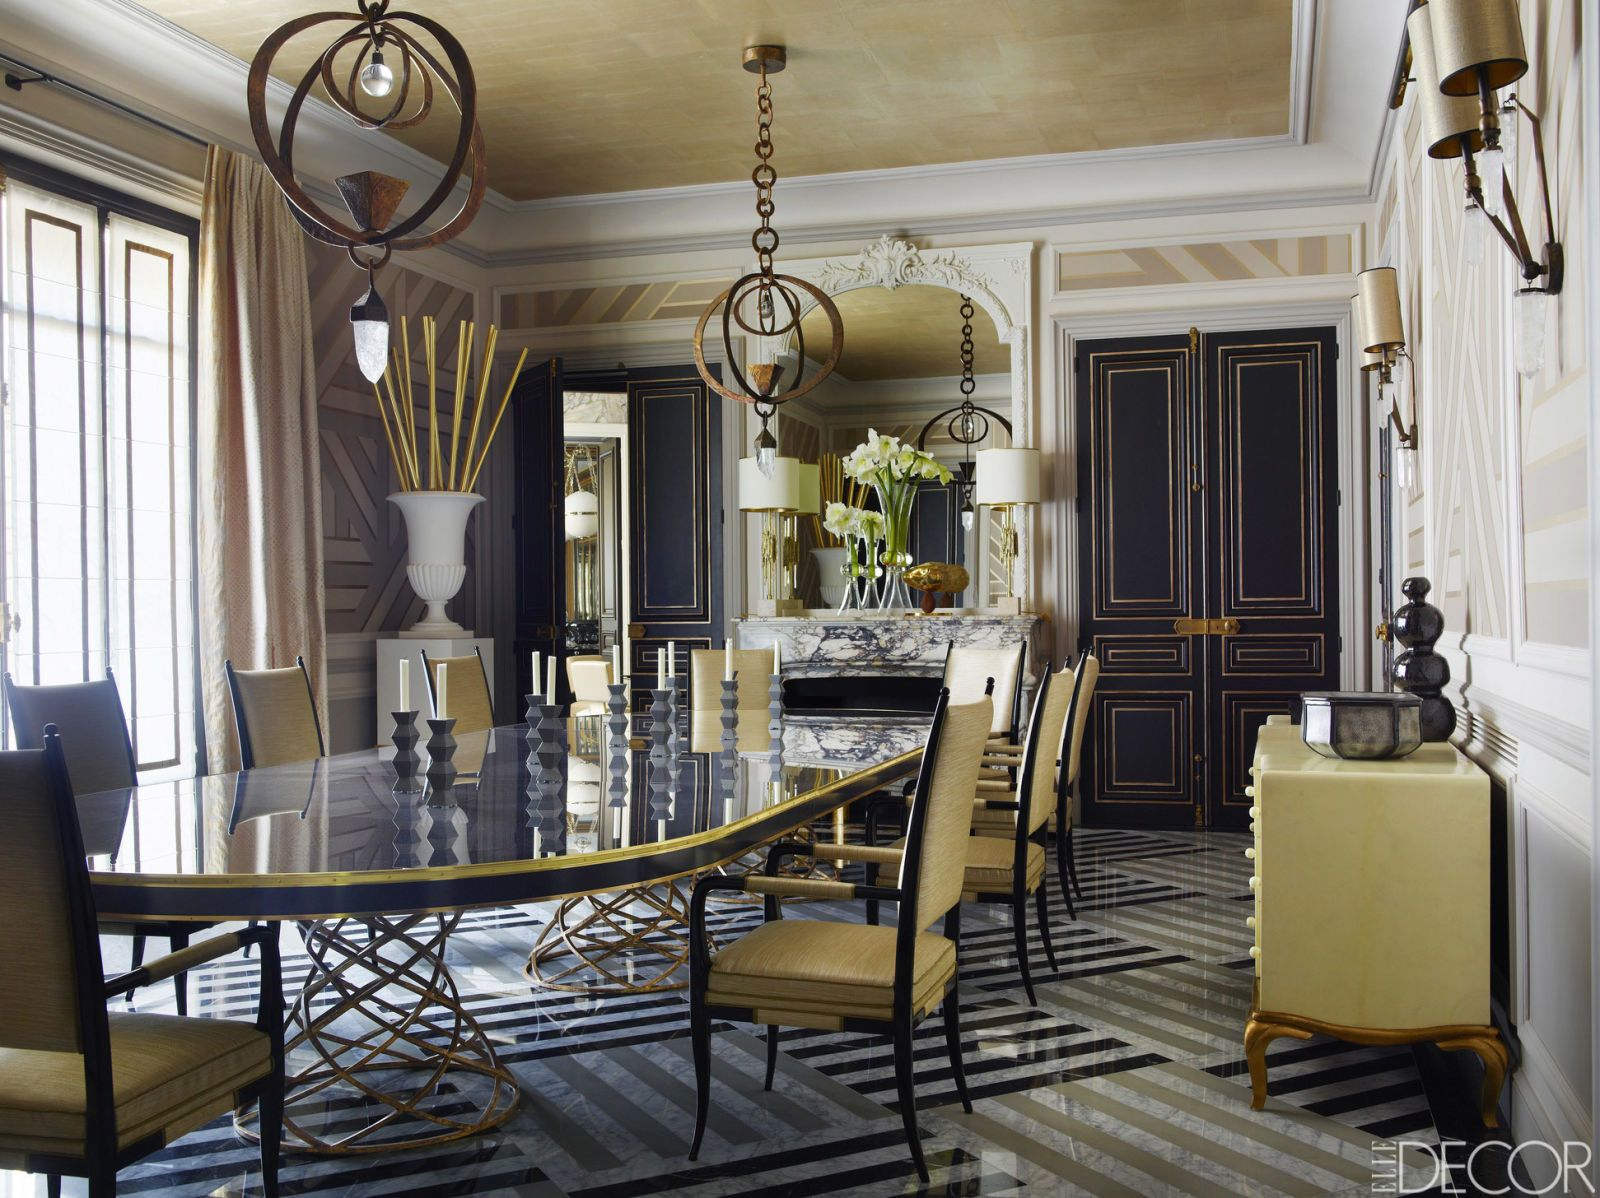 Charming For A Middle Eastern Princessu0027 First Apartment, Designer Jean Louis Deniot  Conjures A